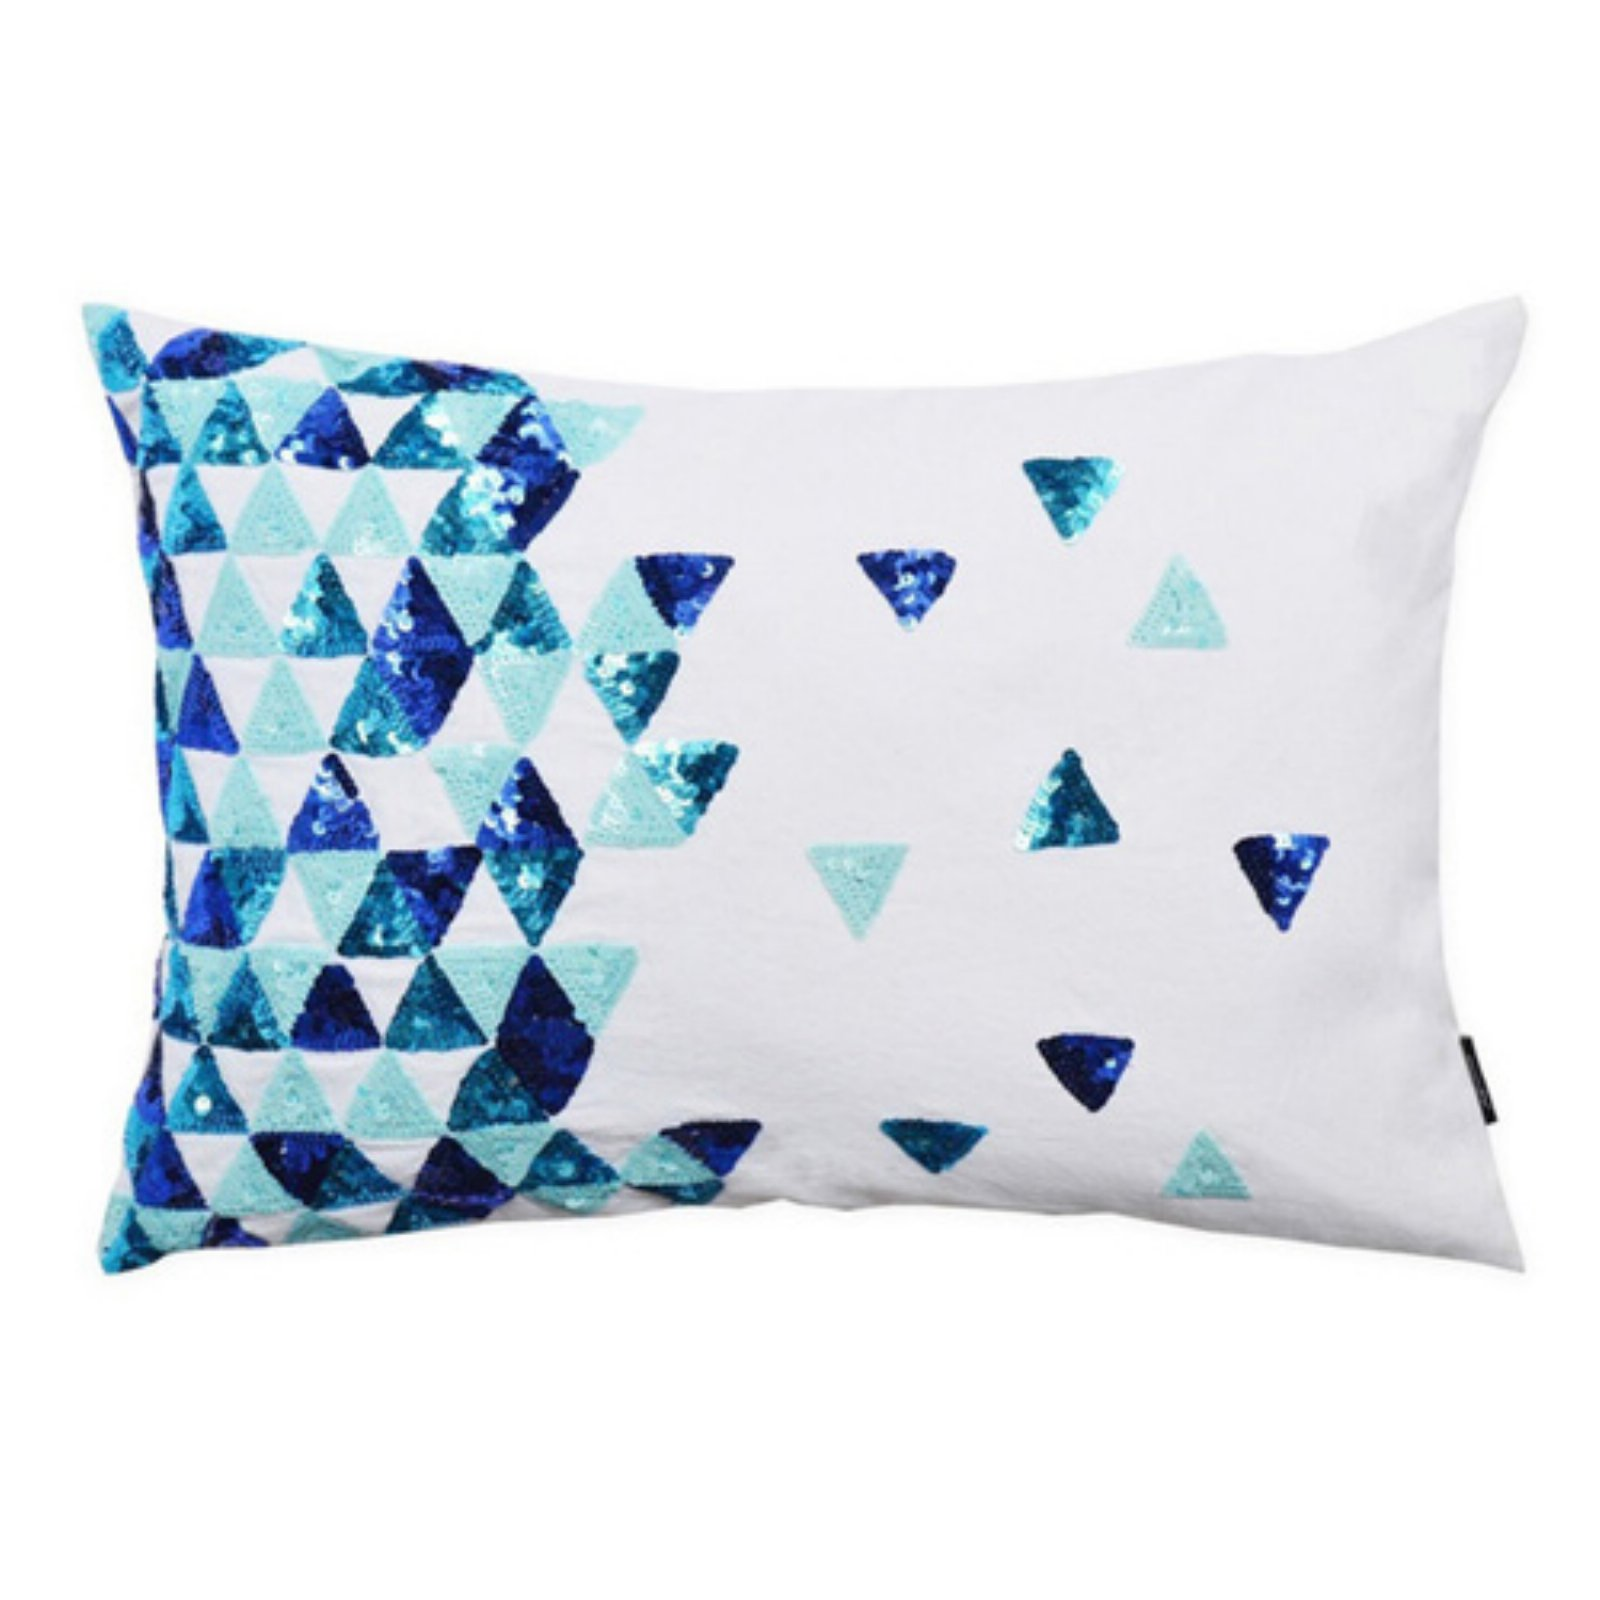 Image of A1 Home Collections Broken Triangle Limited Edition Decorative Throw Pillow